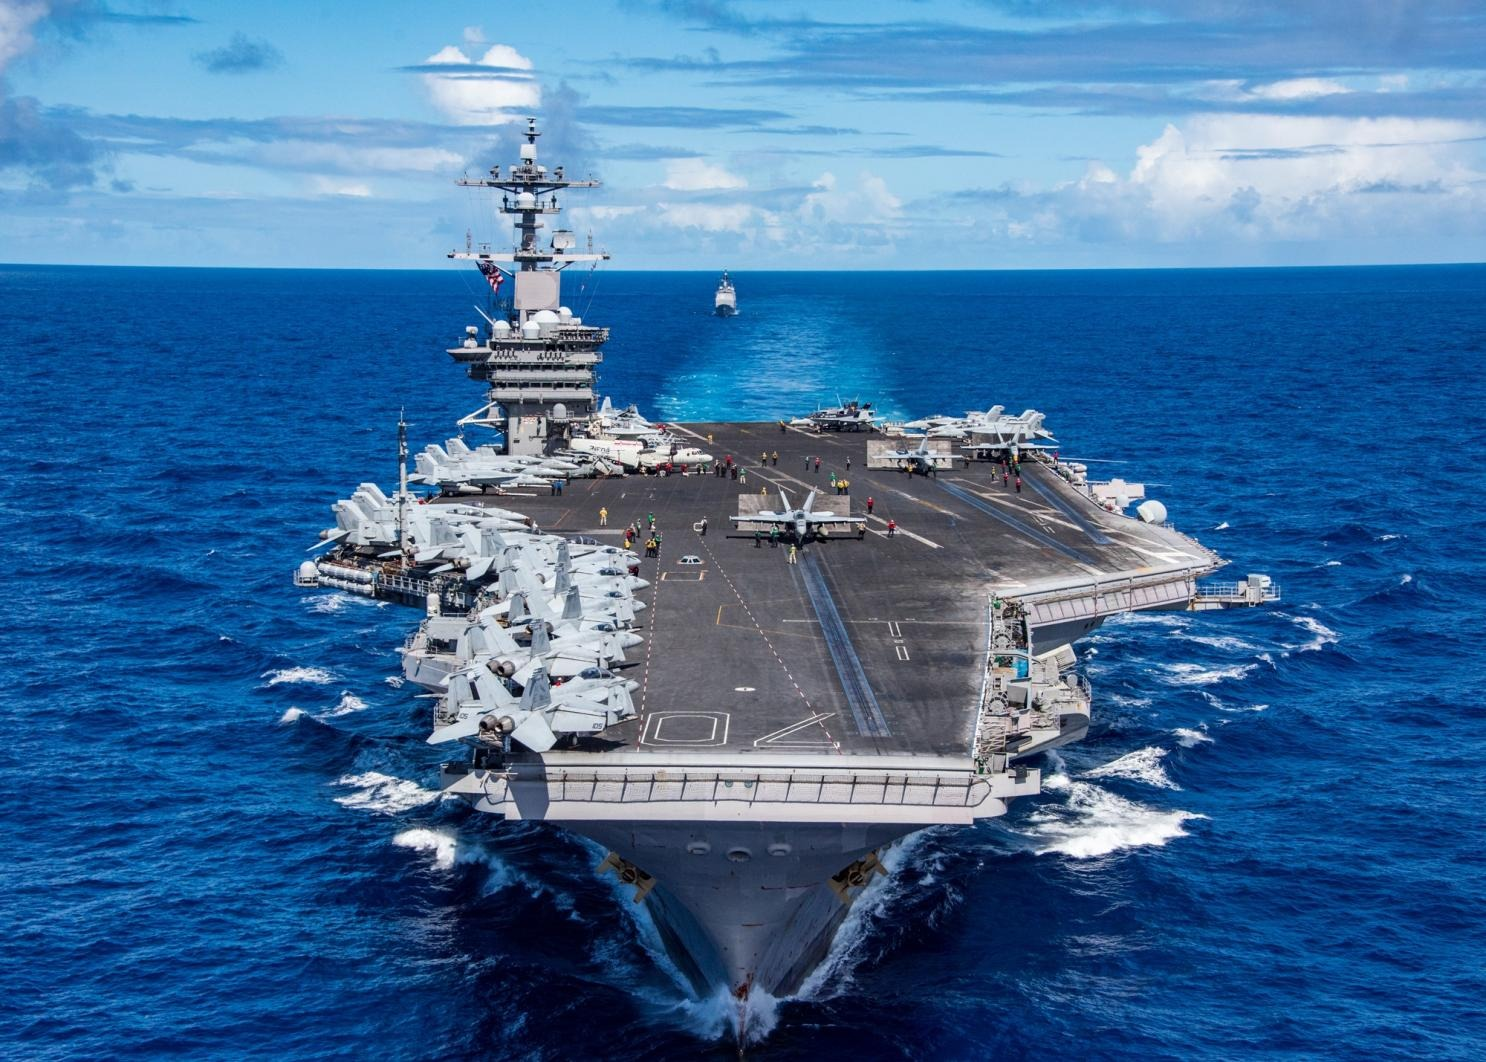 Could Carriers Use Cyber or EW Weapons to Stop Chinese Carrier Killer Missiles? - Warrior Maven